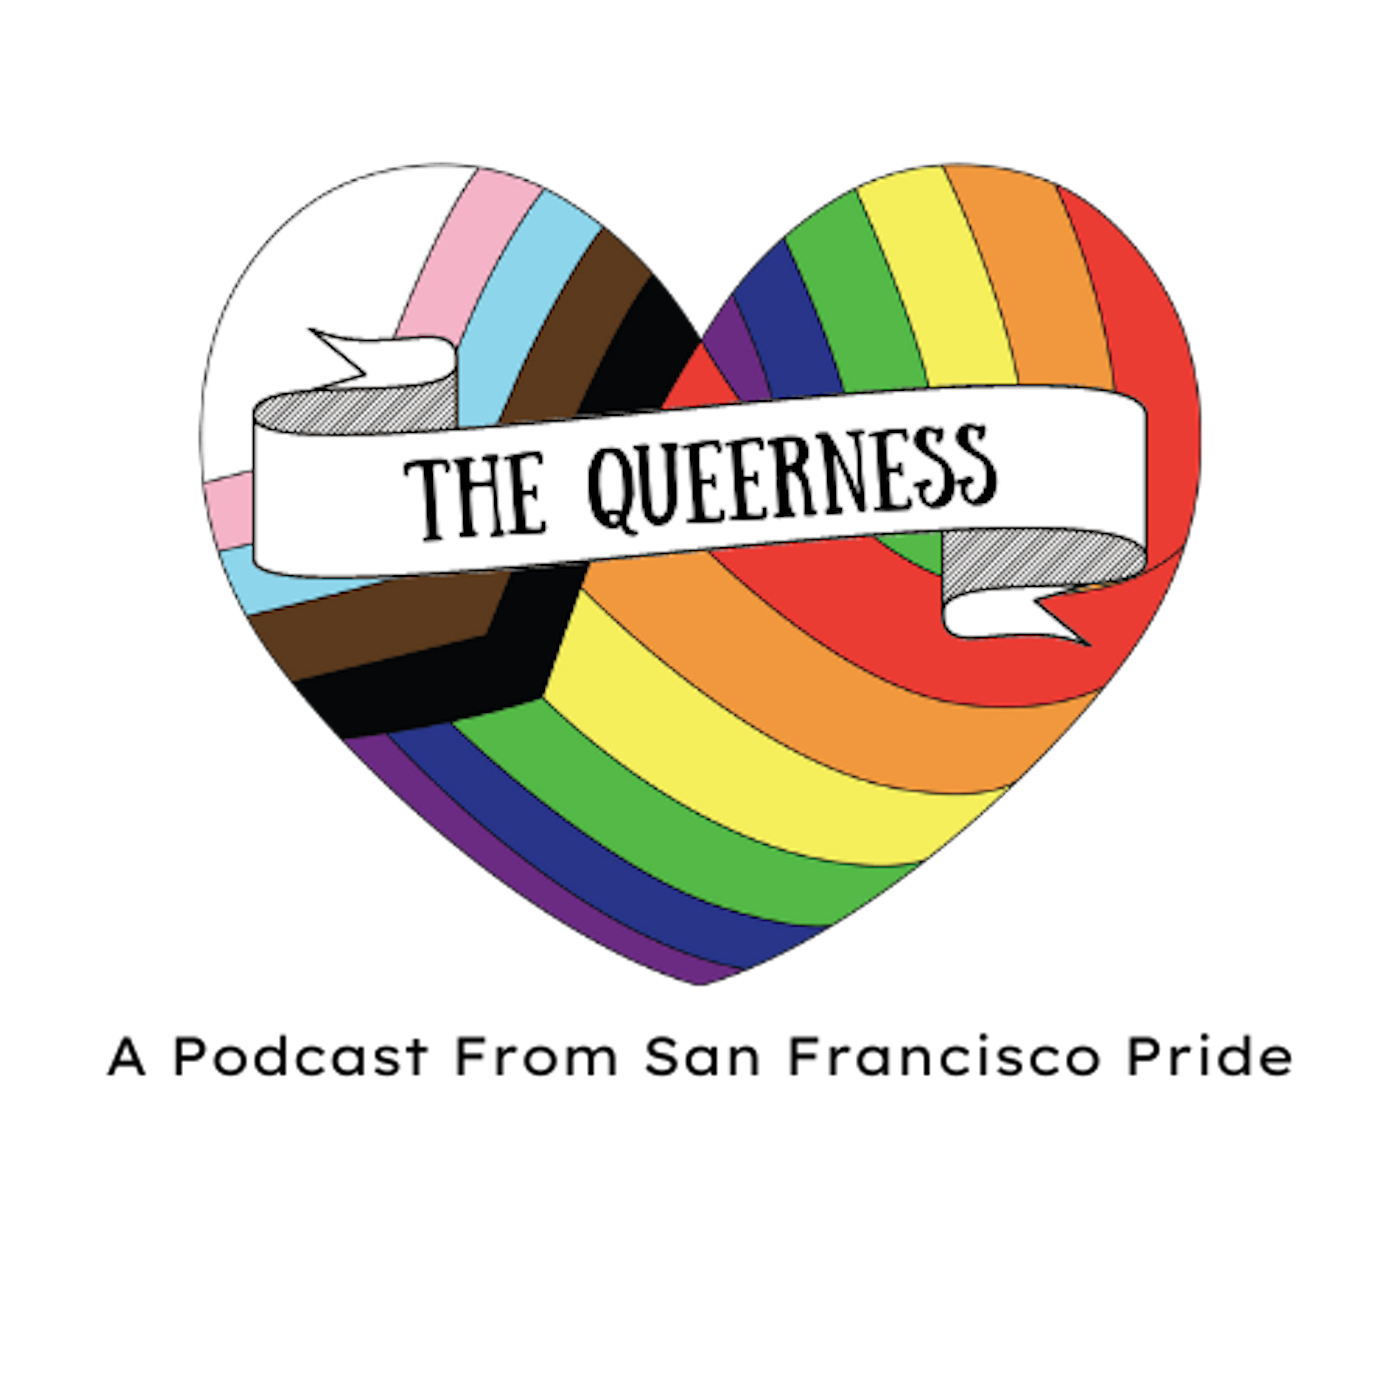 The Queerness